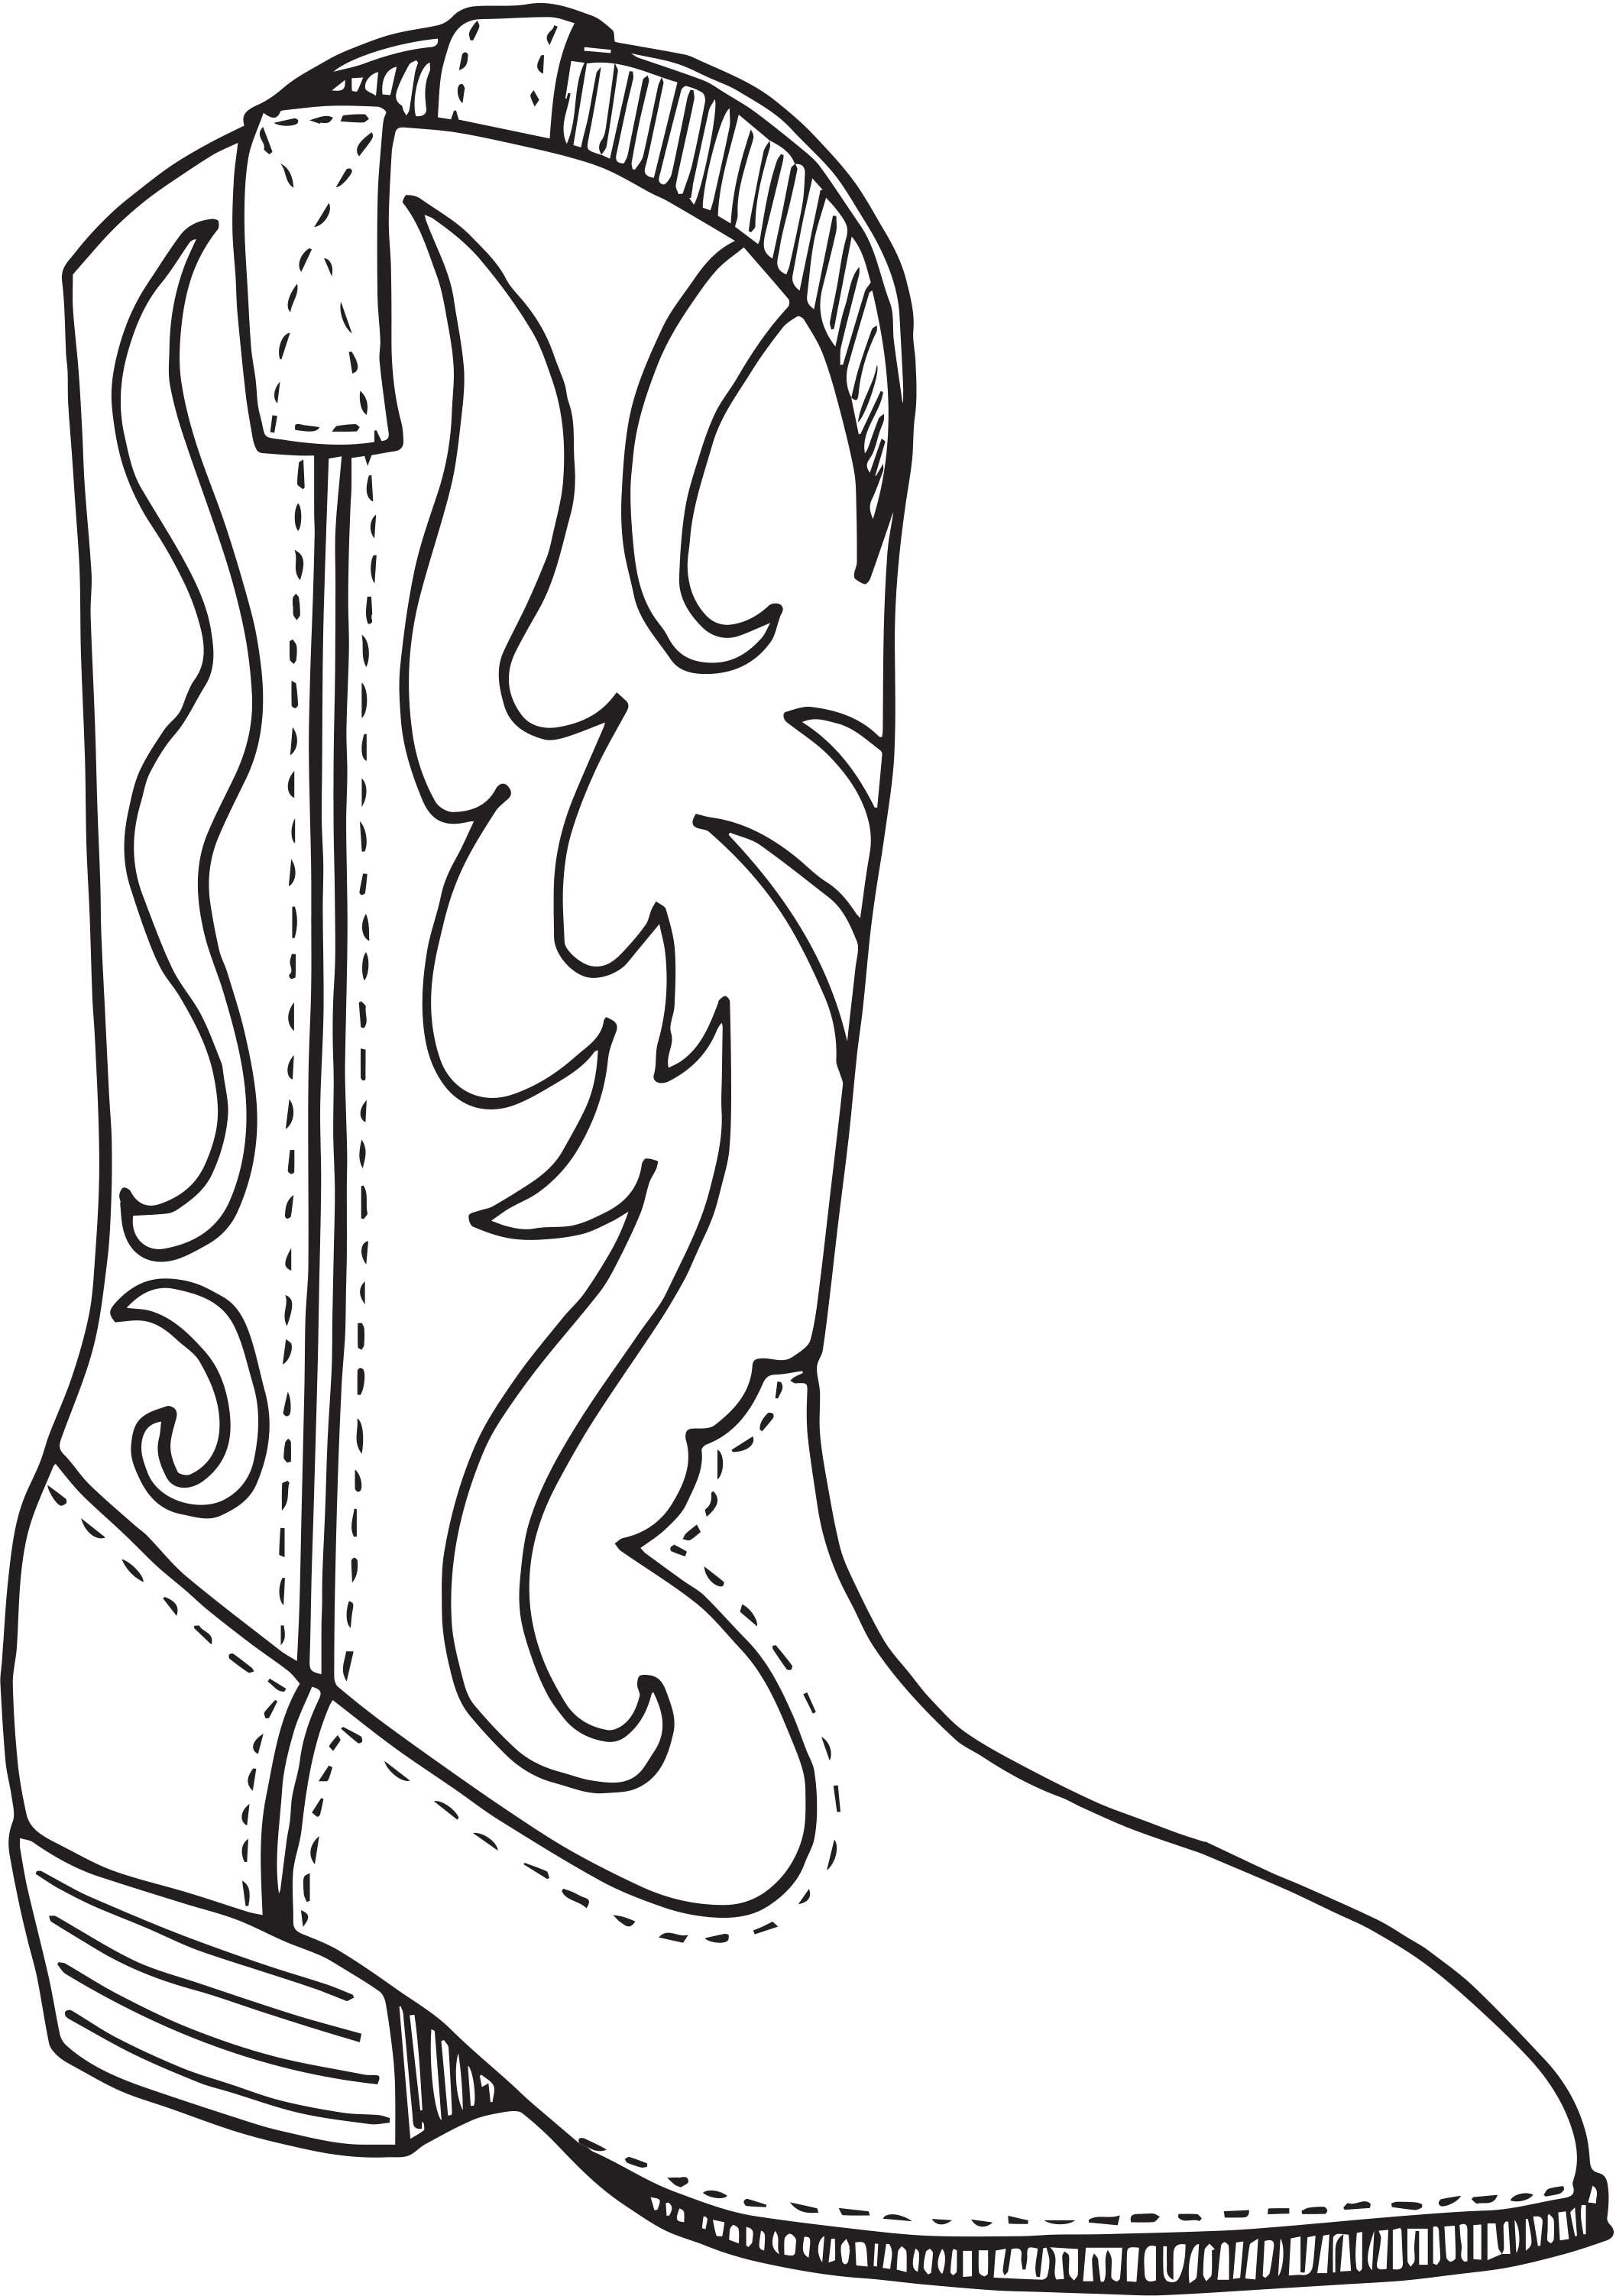 Day 5 Cowboy Boot Coloring Page